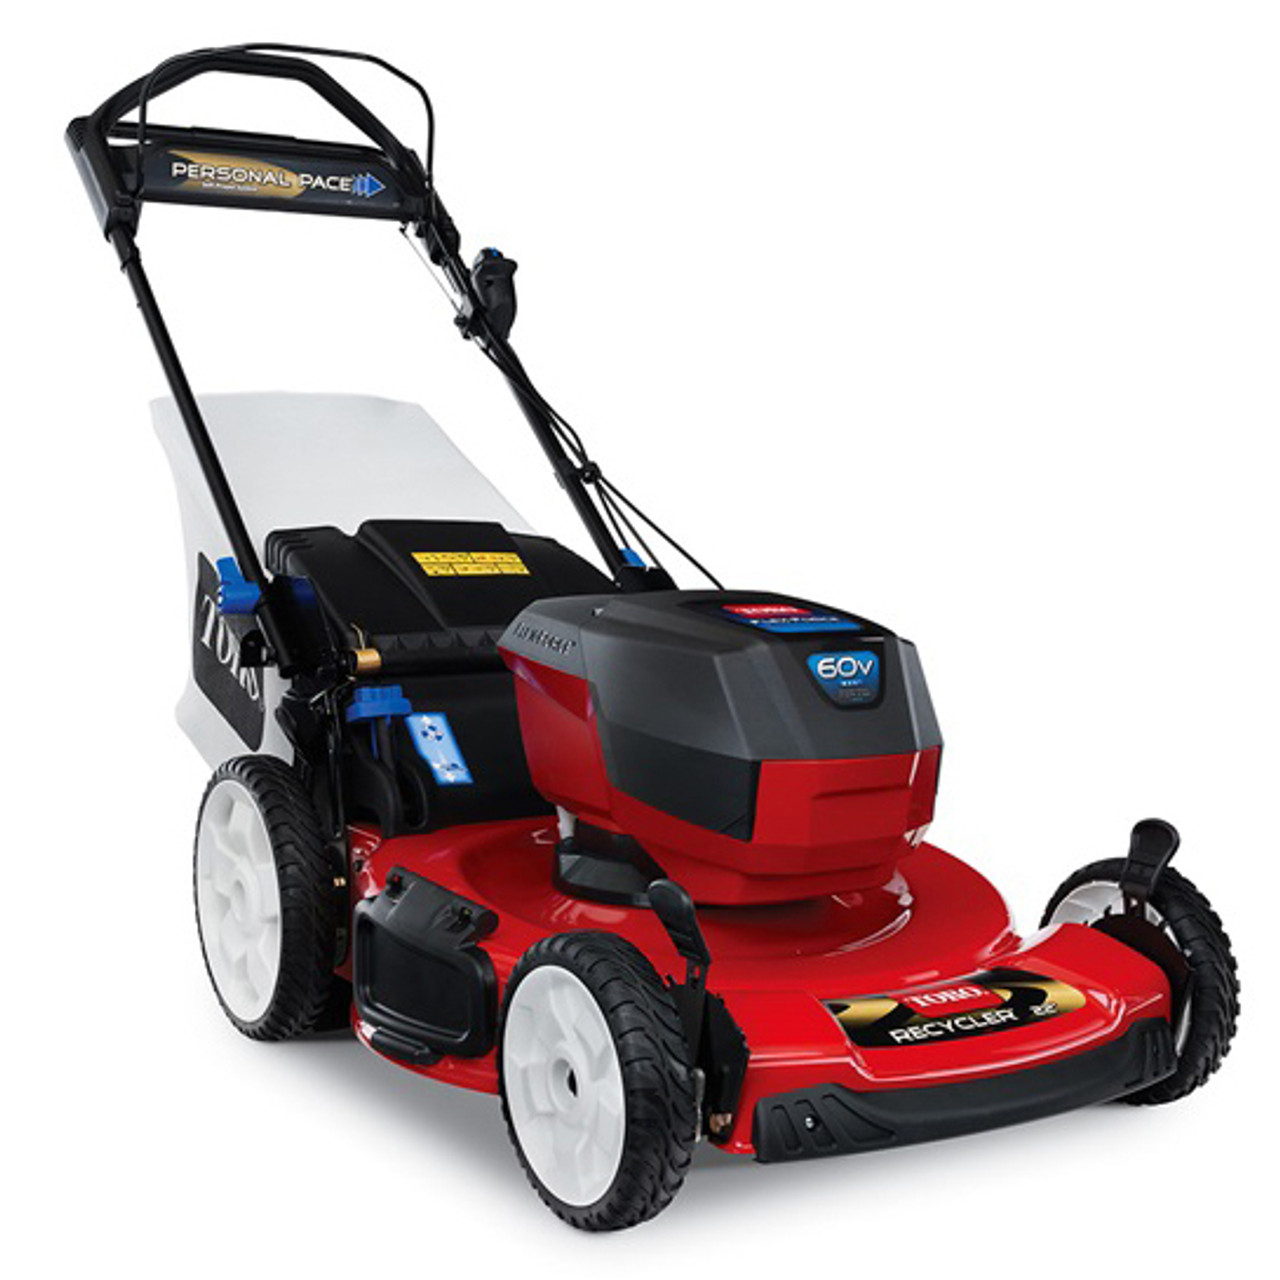 "Toro 20363 Recycler® 22"" Self-Propelled 60V Battery-Powered Walk Behind Lawn Mower w/ 6.0Ah Battery Image"